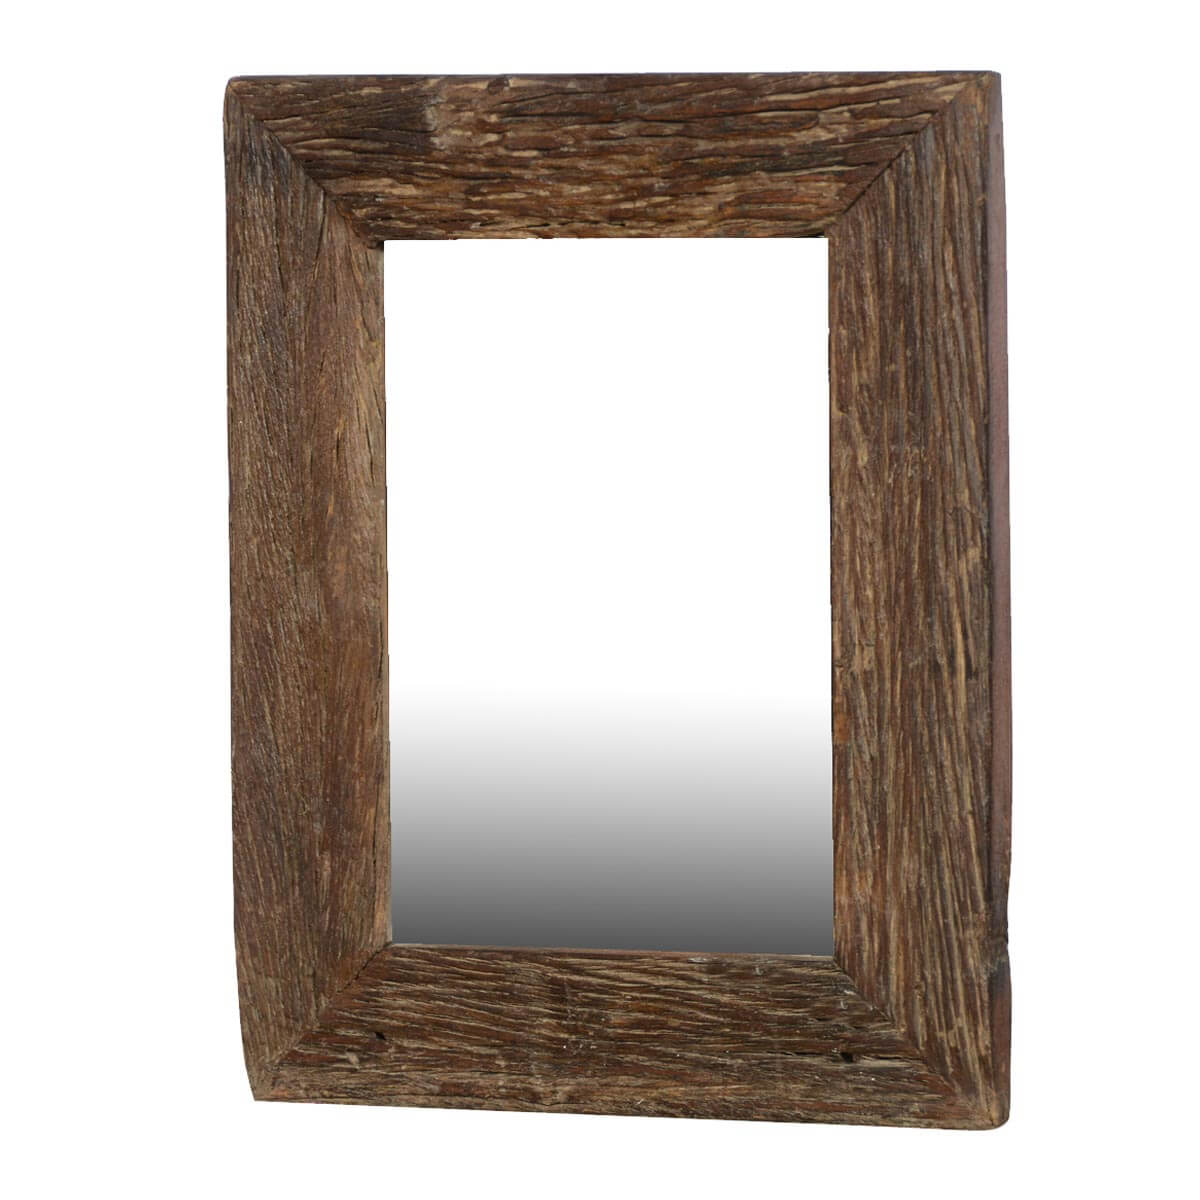 appalachian rustic reclaimed wood 23 5 wall mirror frame